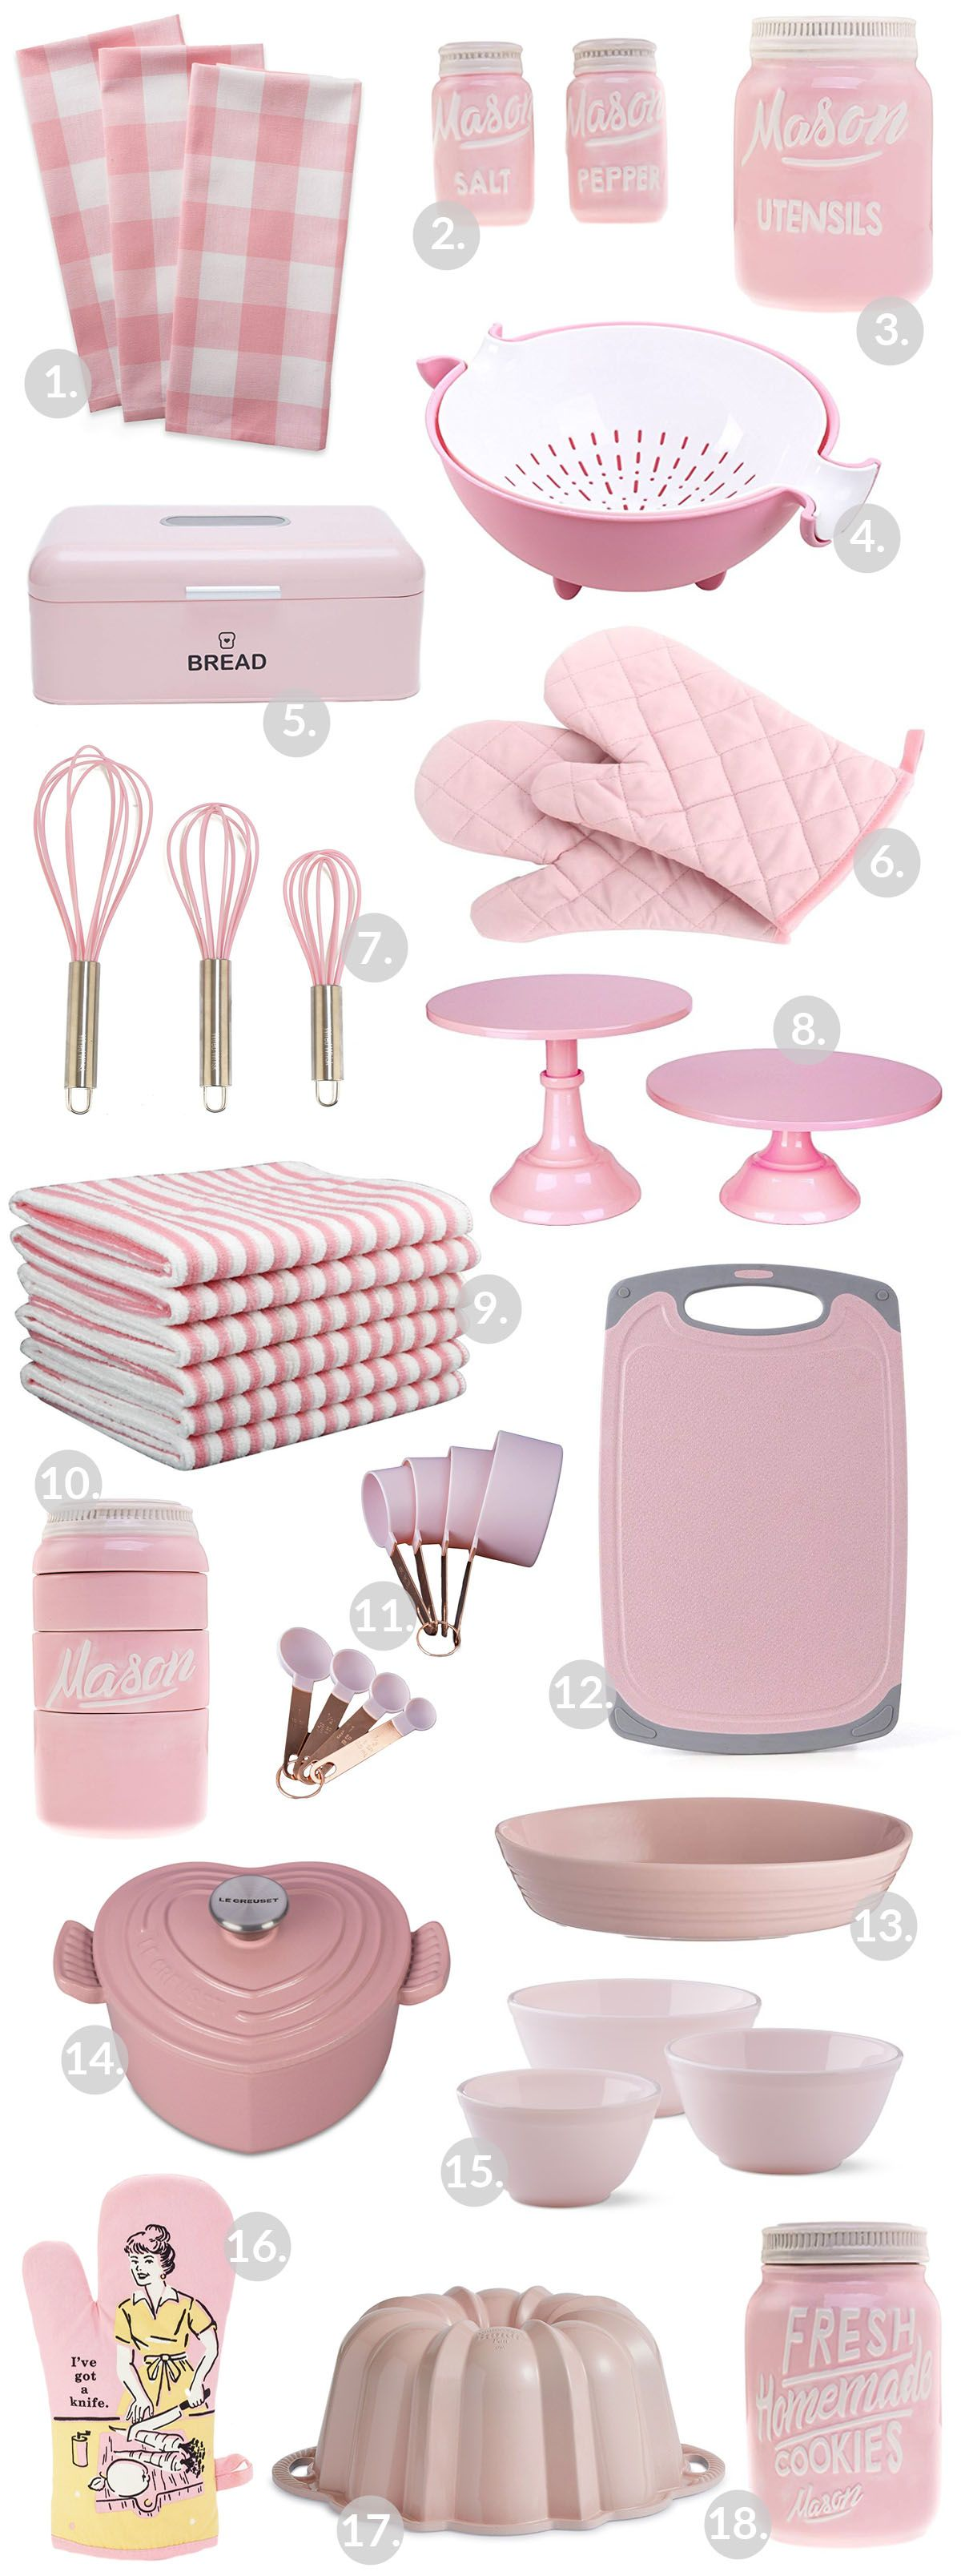 Pink kitchen gadgets and appliances! The perfect pink pops of color for a kitchen!…